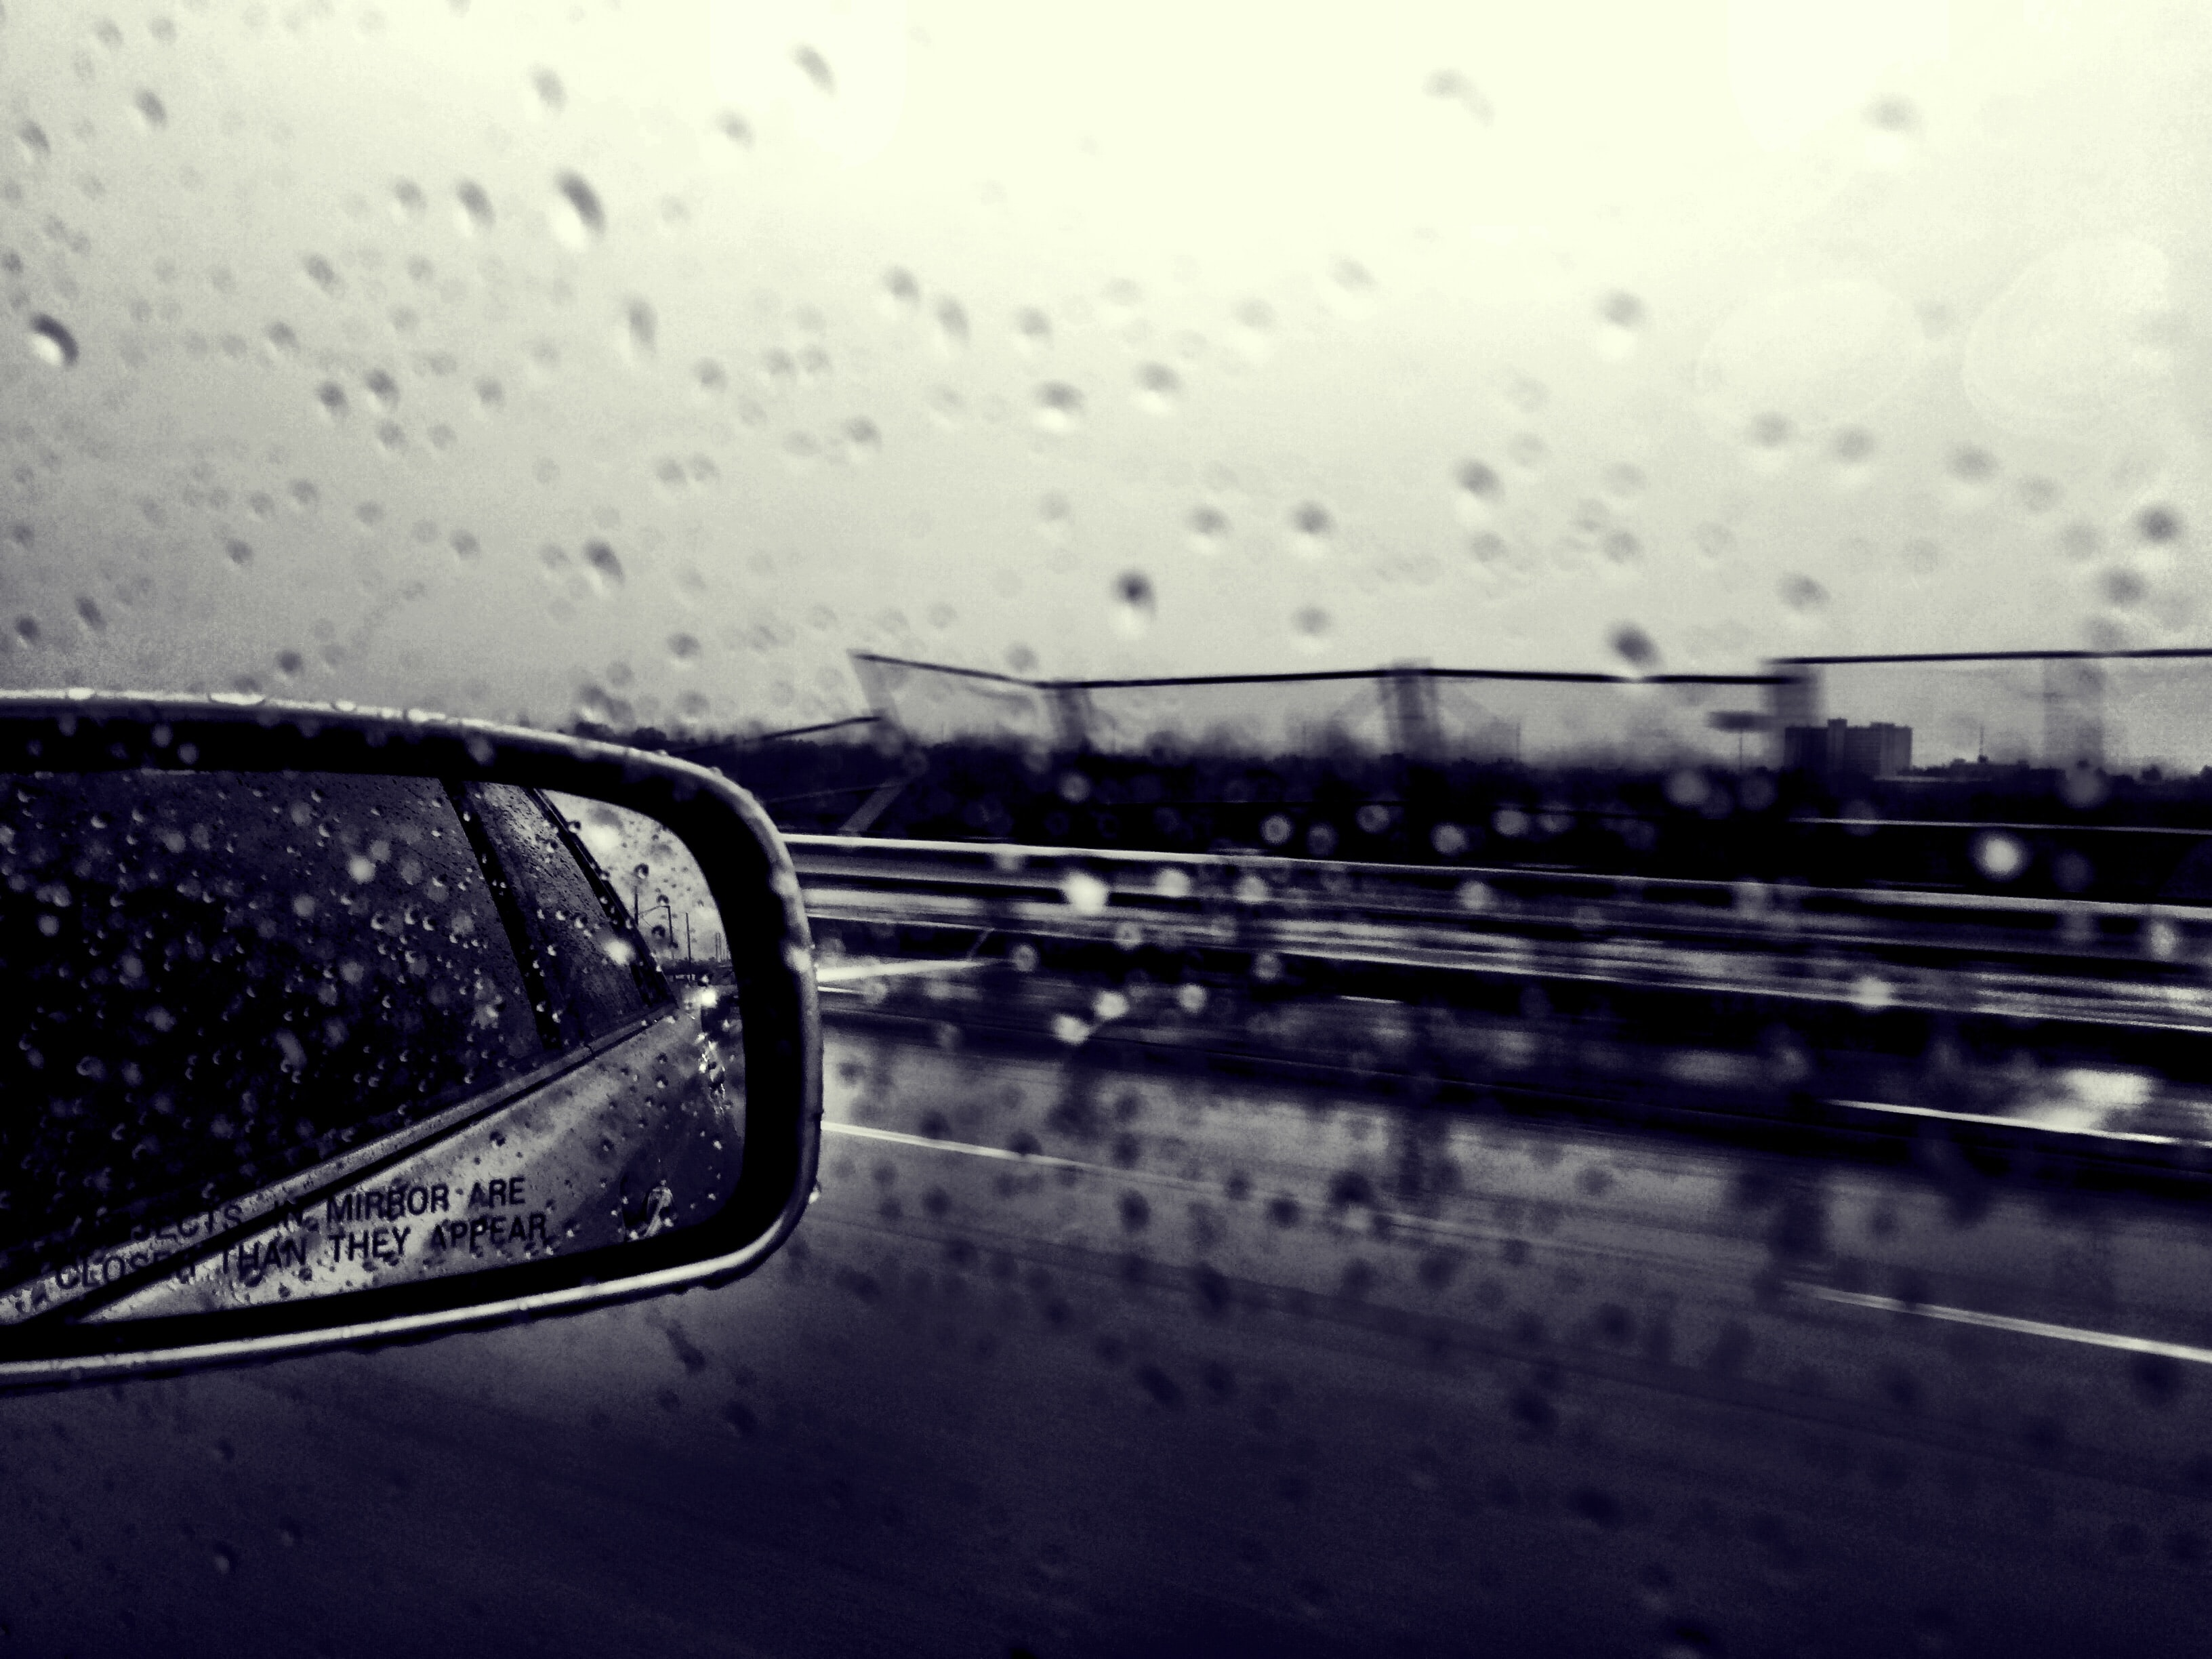 Black and white shot of car wing mirror and window reflection with rain droplets and road